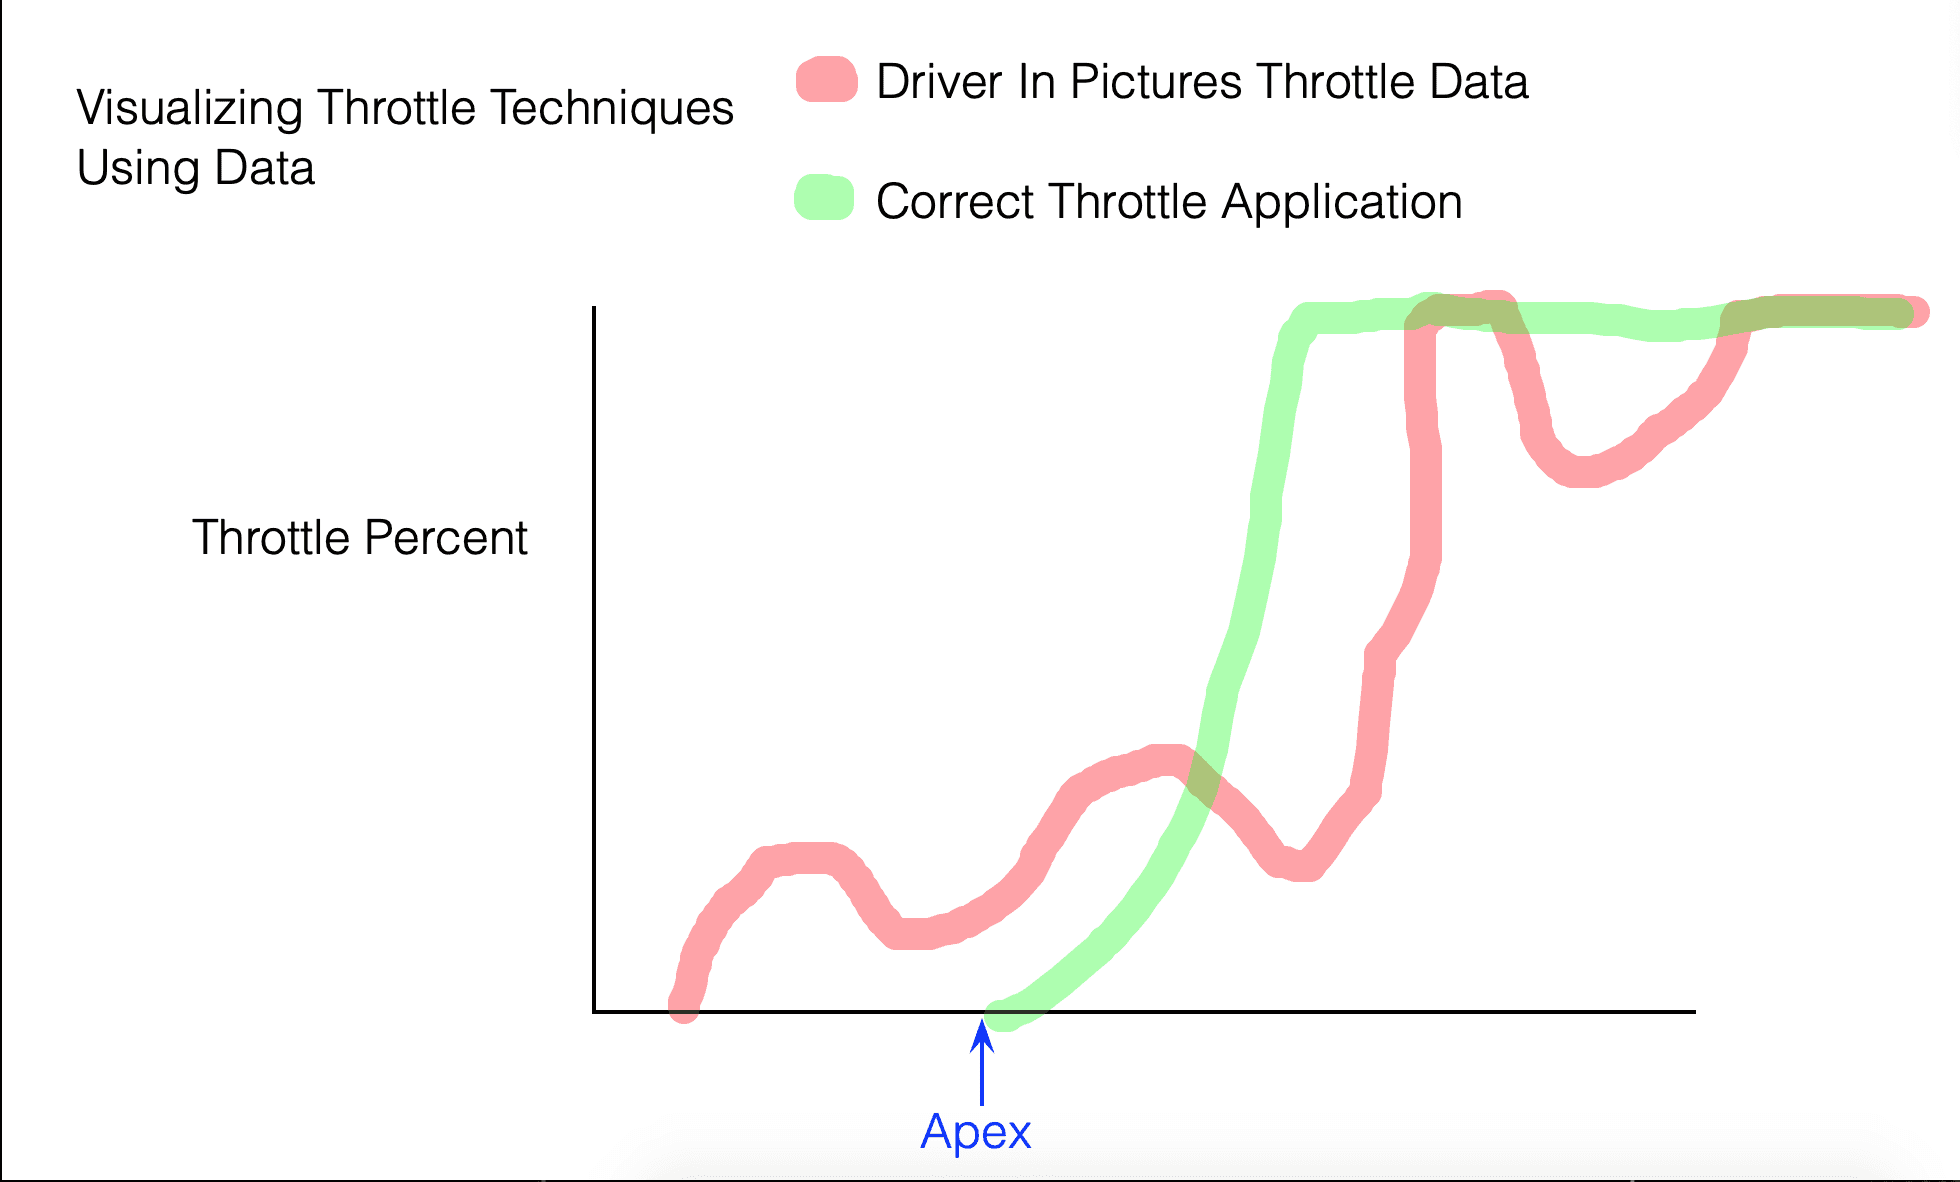 What a racecar drivers throttle trace should look like on data